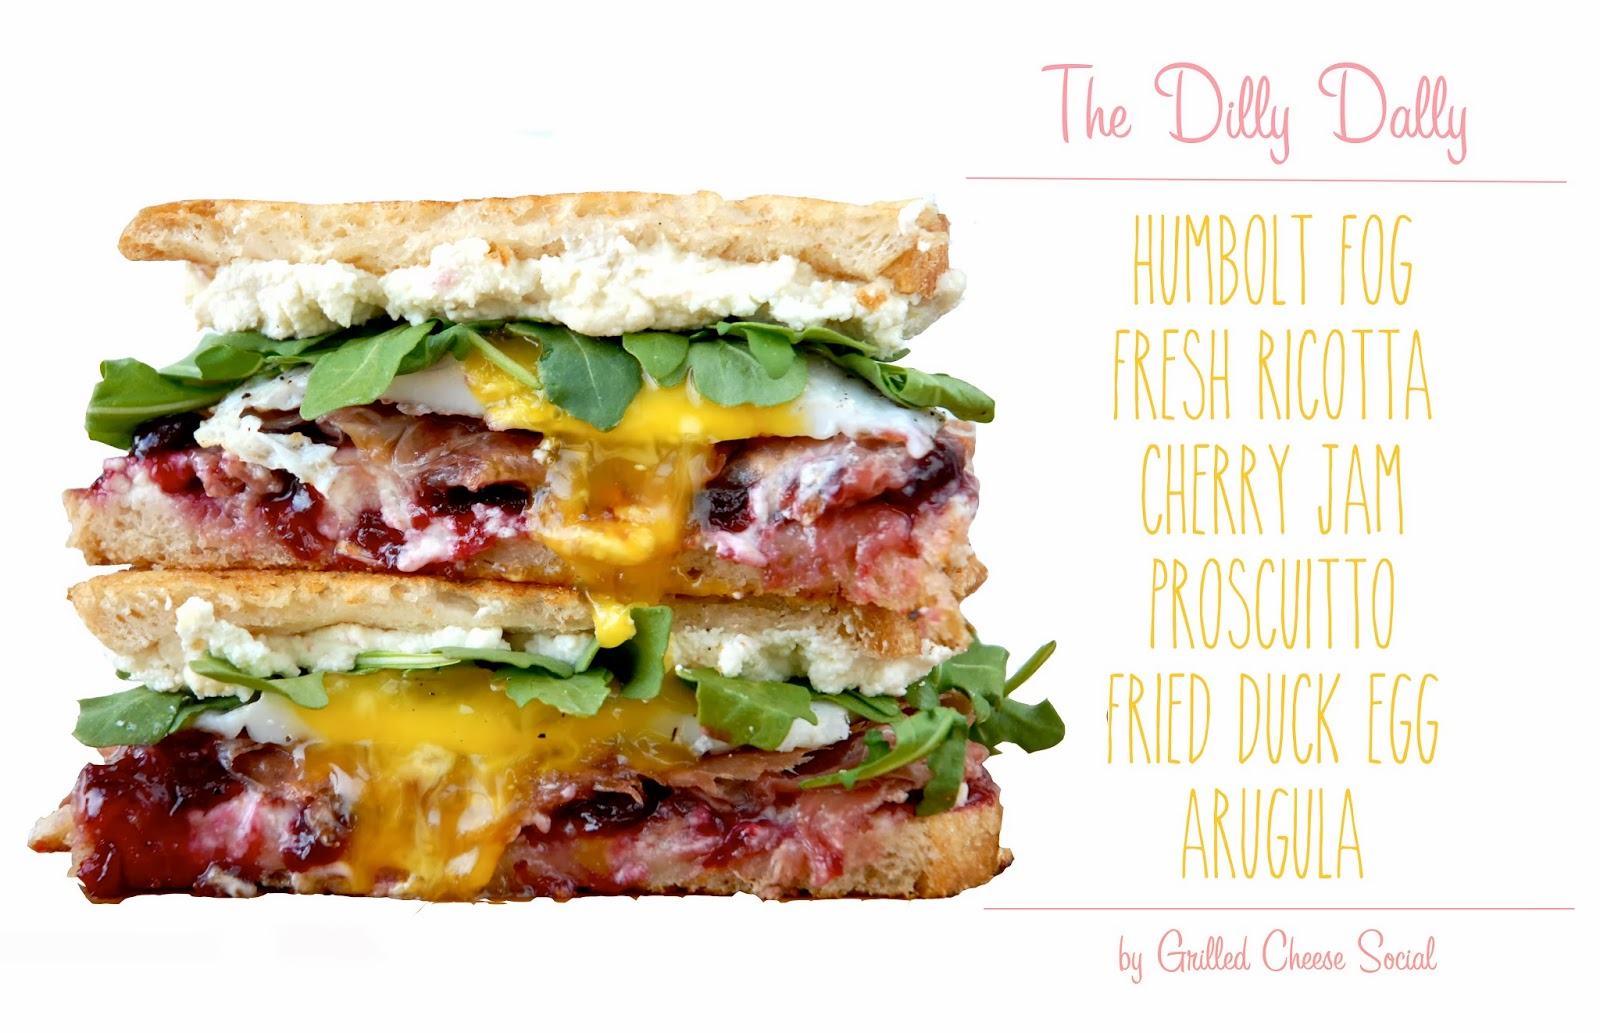 The Dilly Dally Grilled Cheese Social